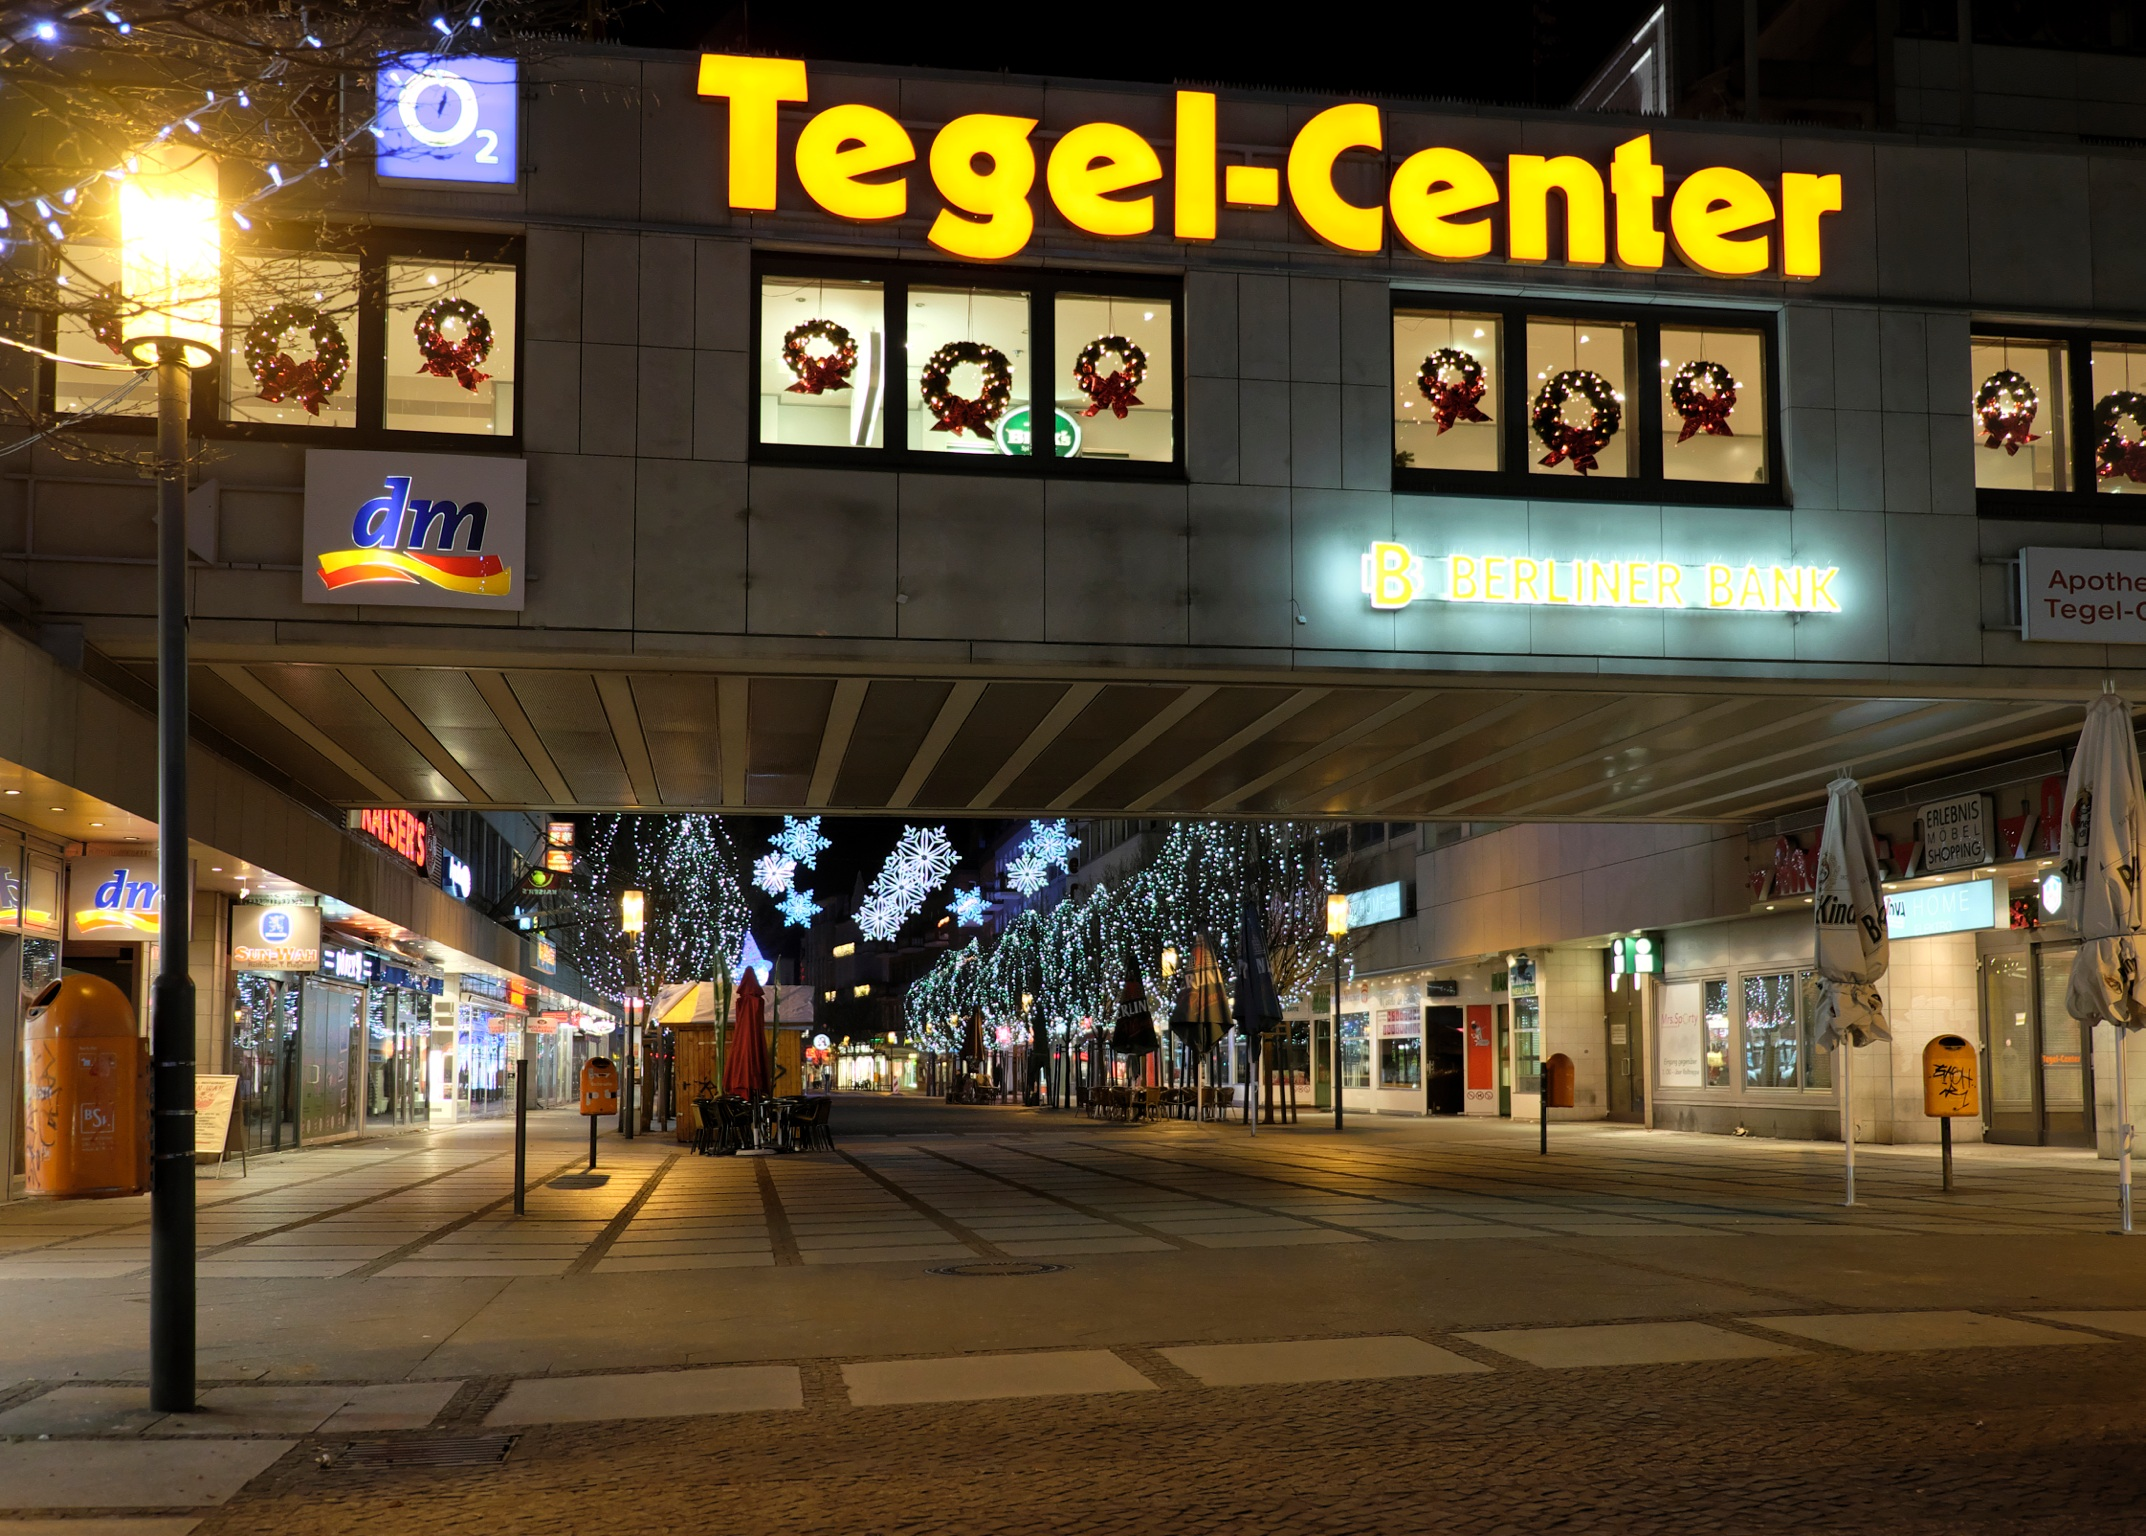 Tegel Center